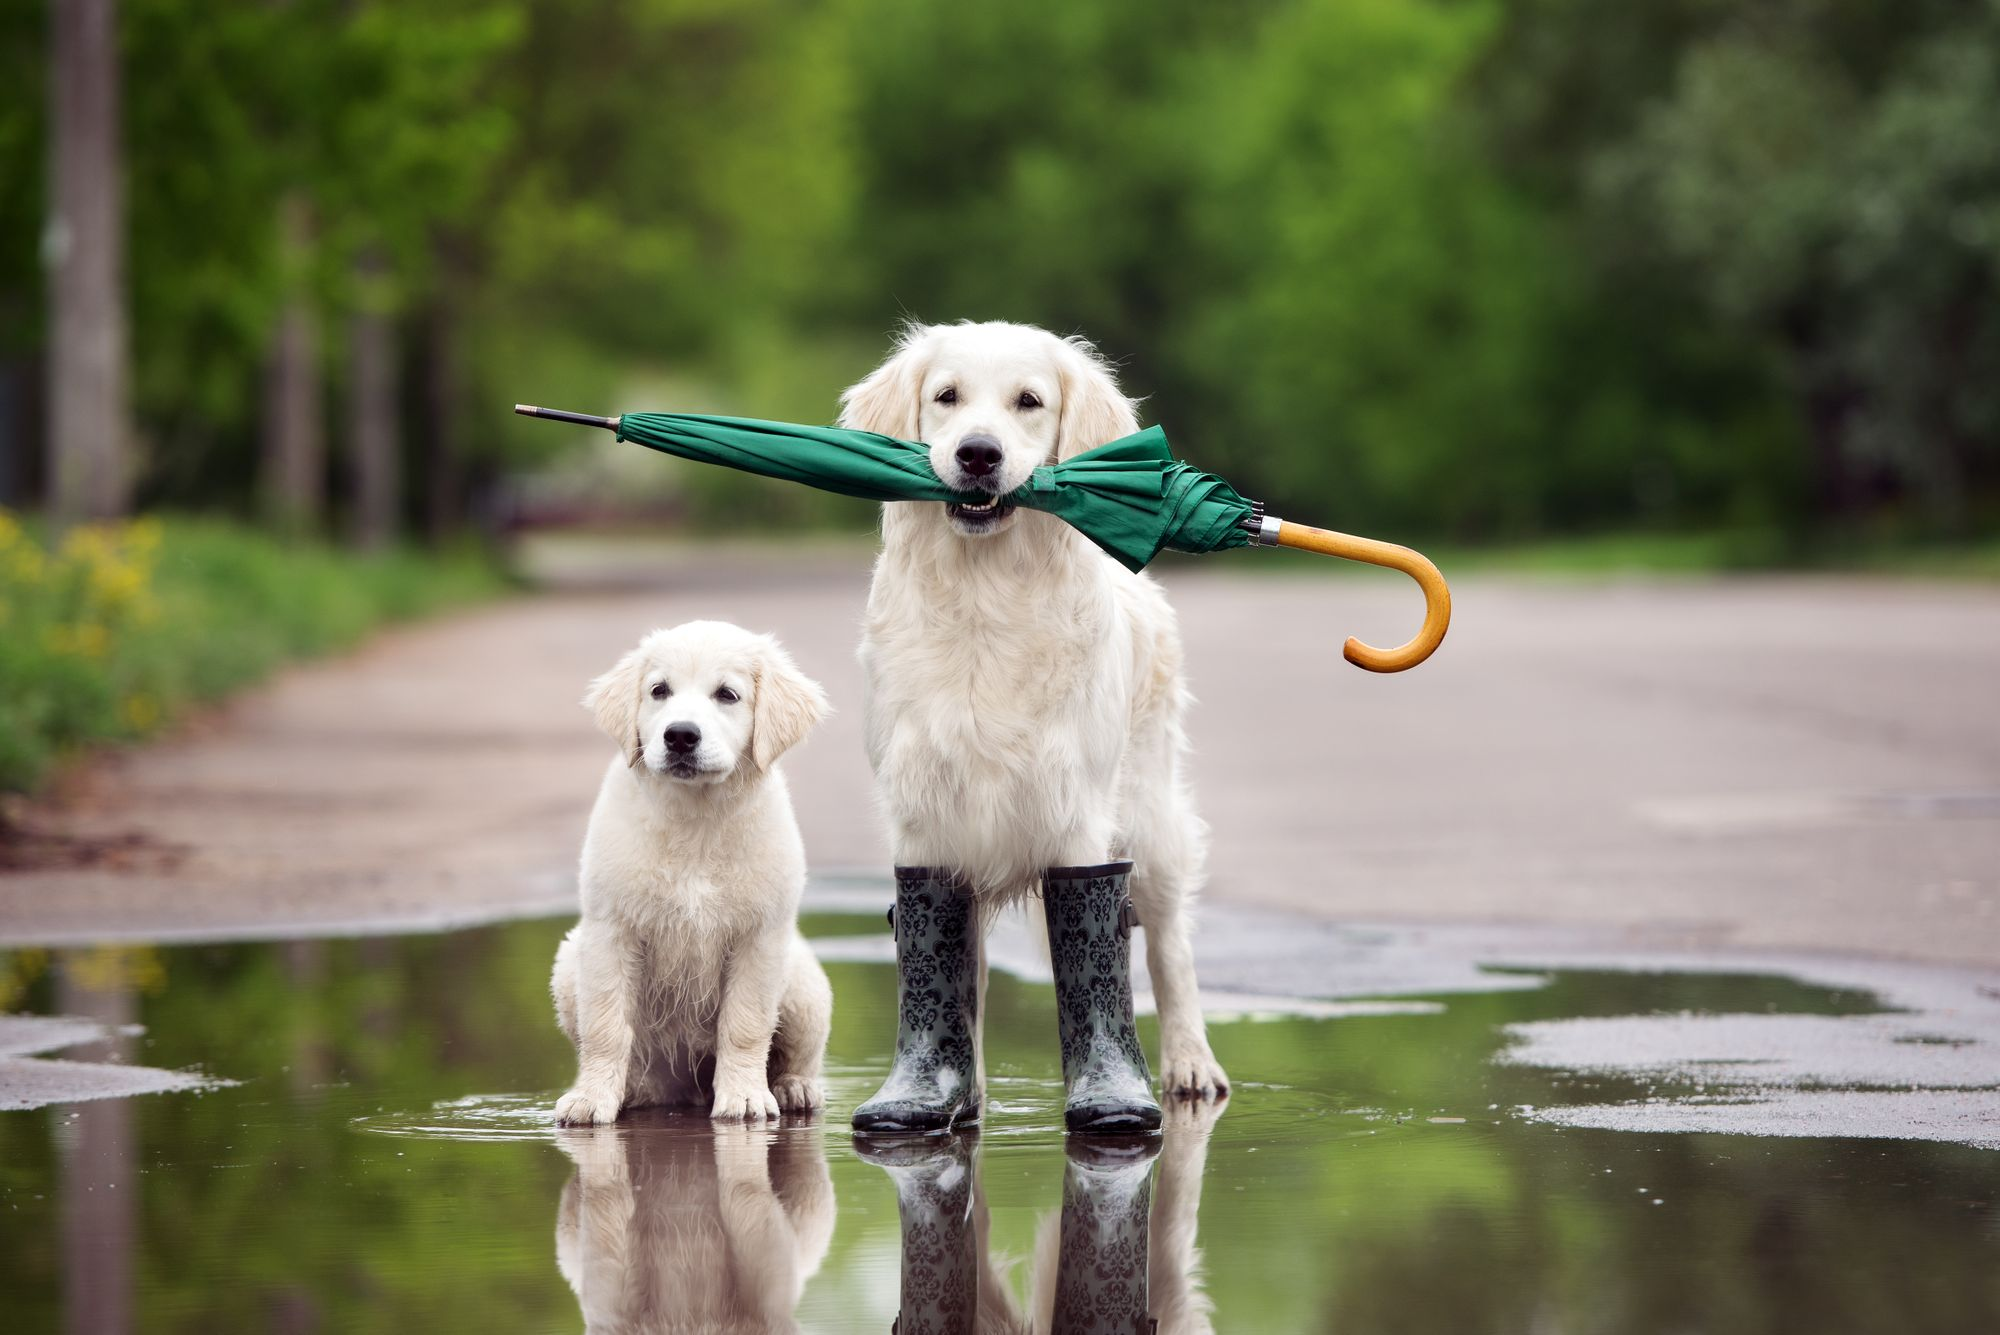 Rainy Day Activities For Dogs